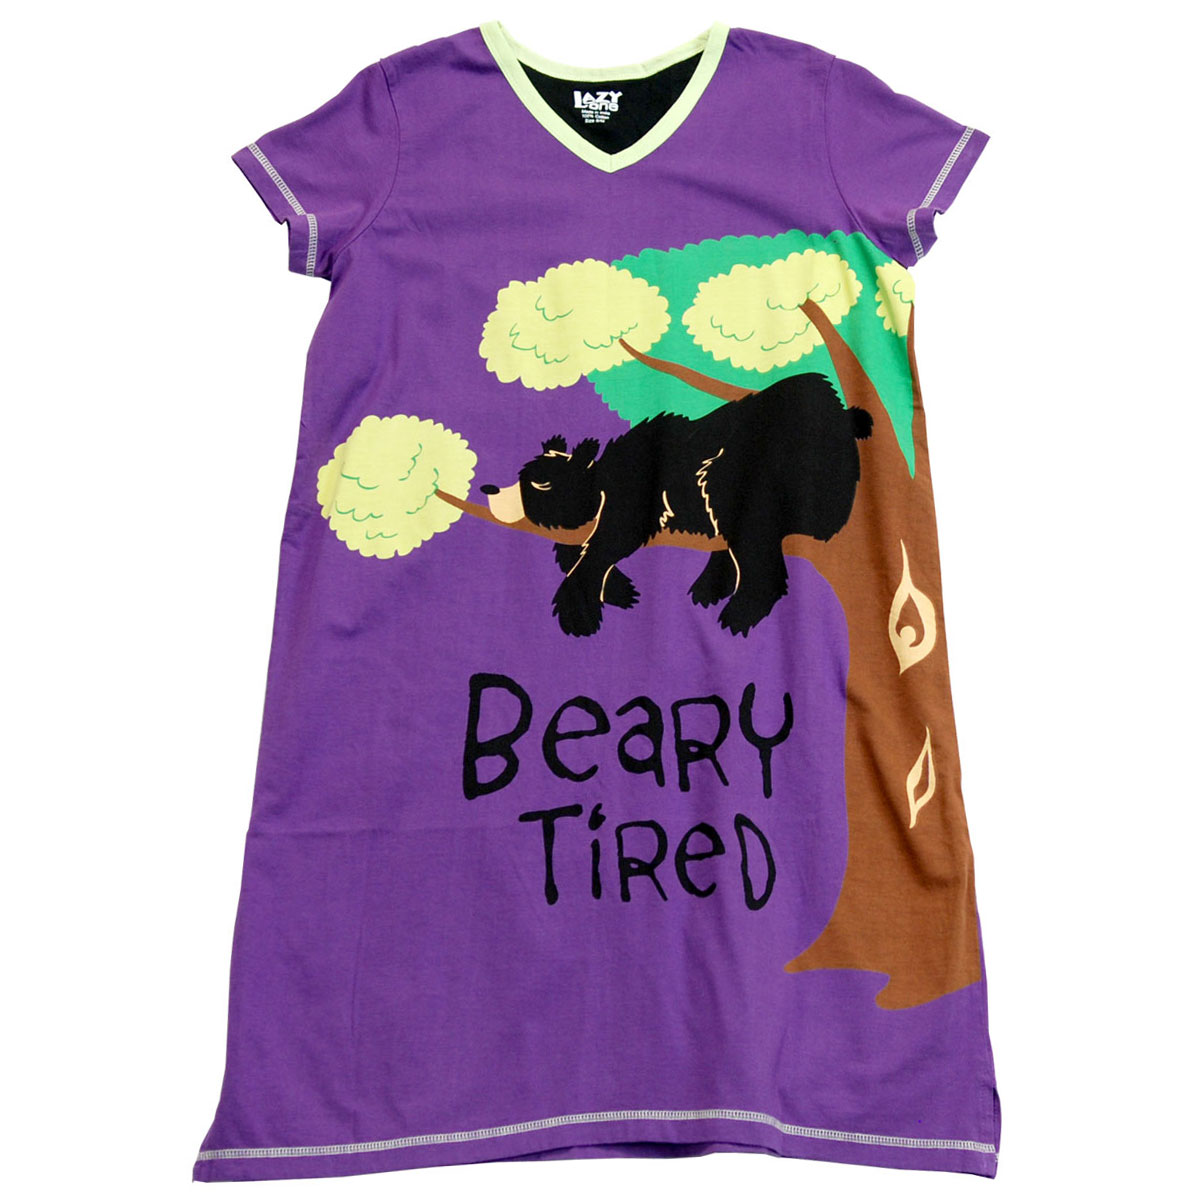 Nightshirt - Beary Tired